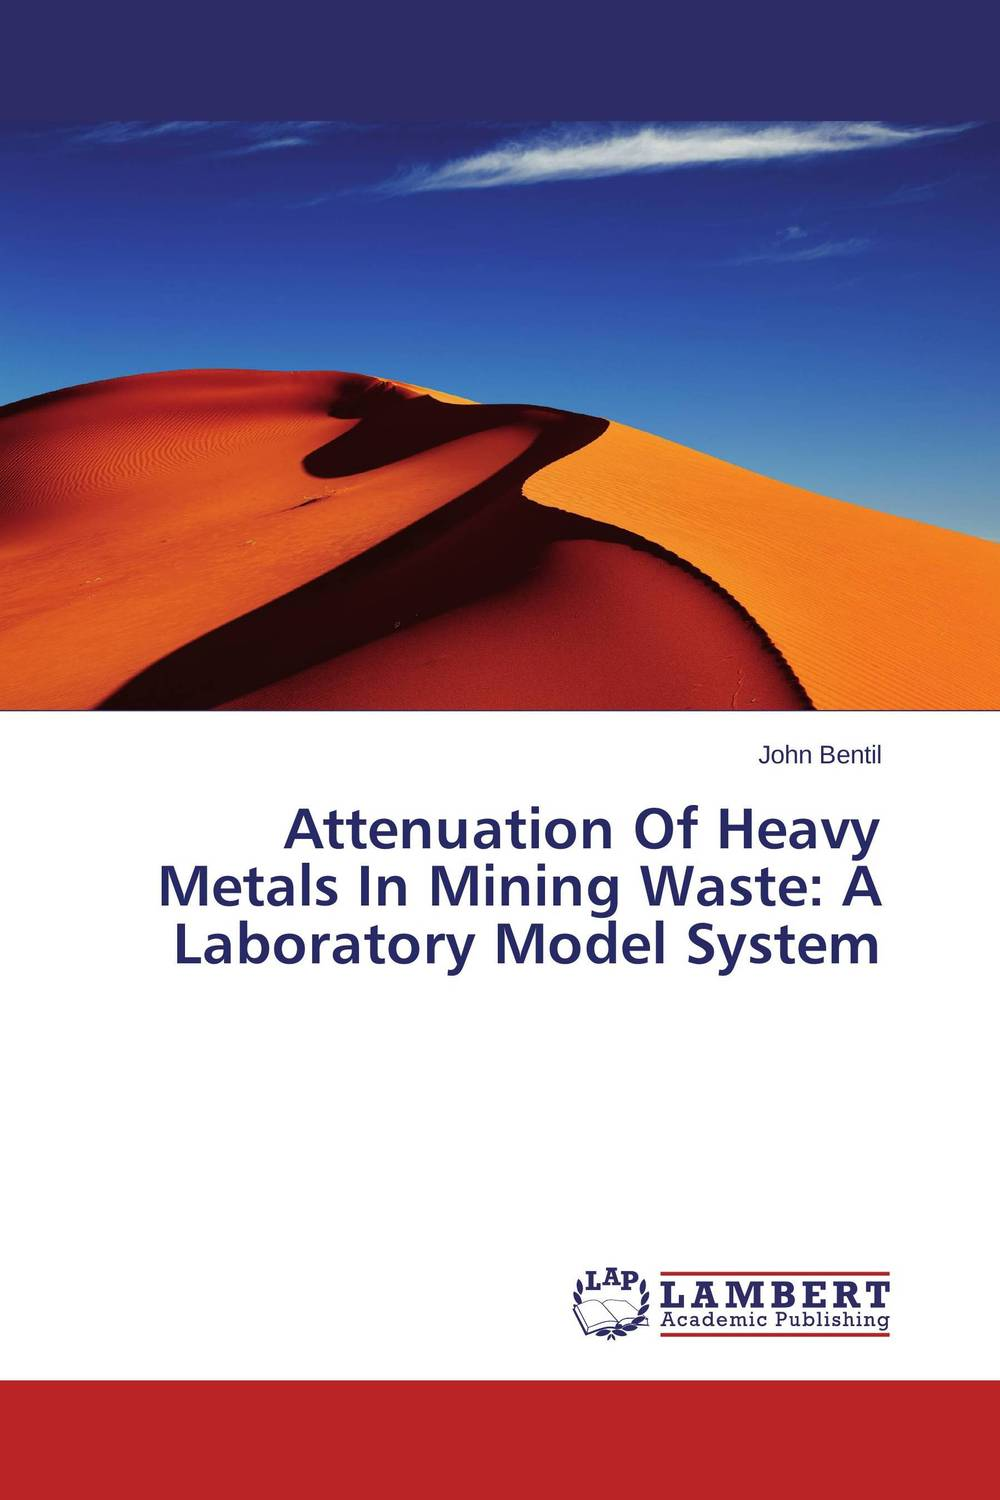 Attenuation Of Heavy Metals In Mining Waste: A Laboratory Model System anatomy of a disappearance